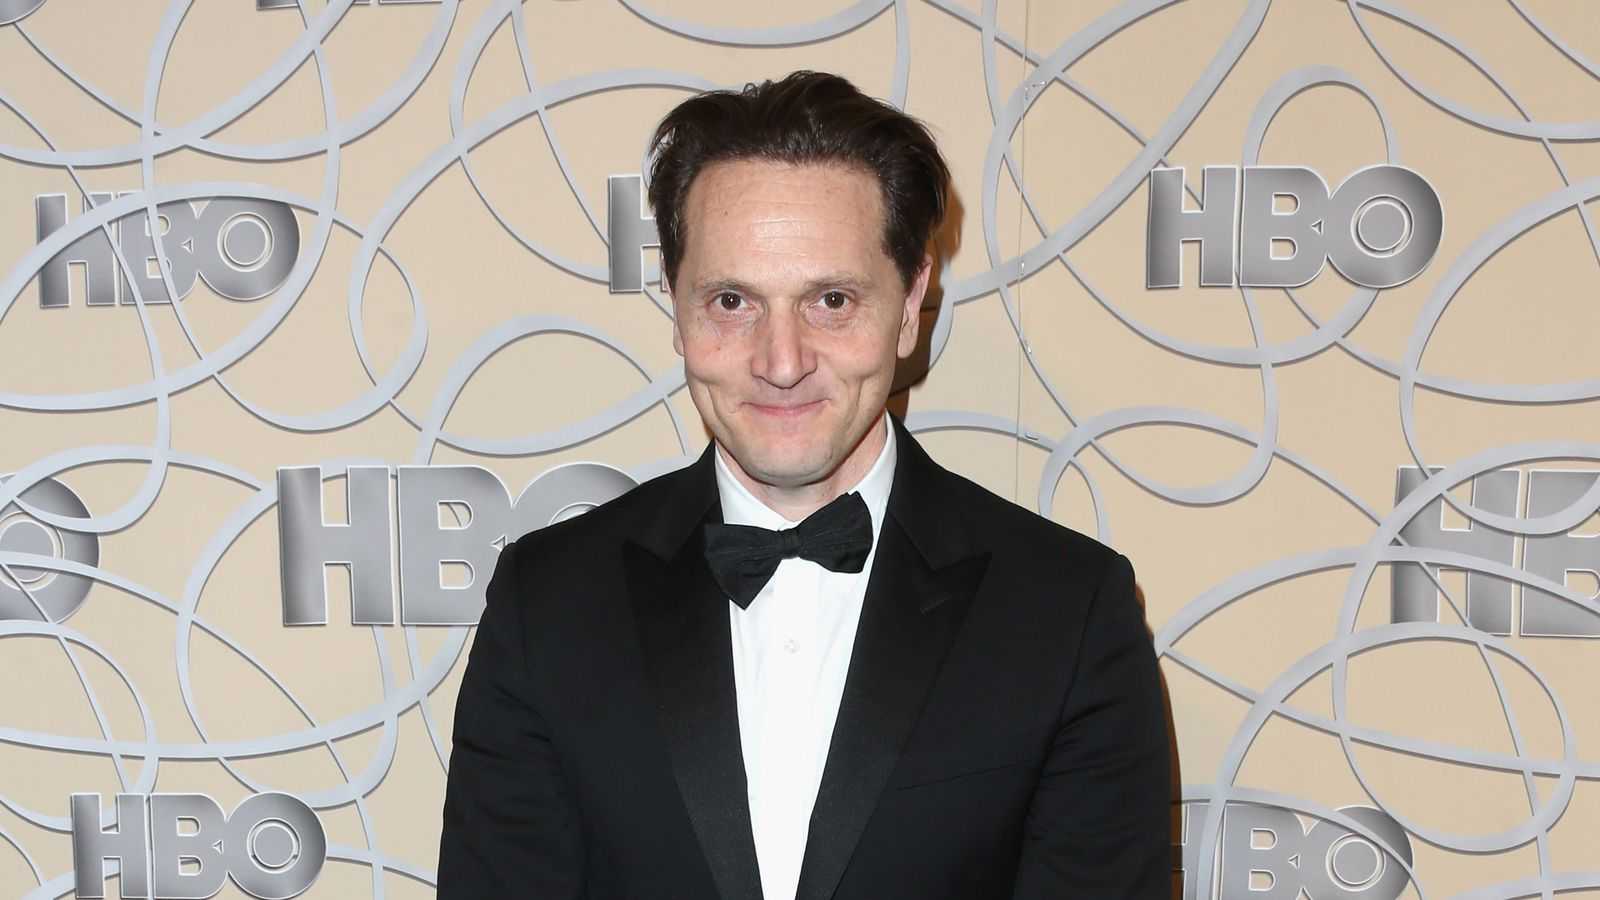 HBO's 'Silicon Valley' is more than just dick jokes, actor Matt Ross says